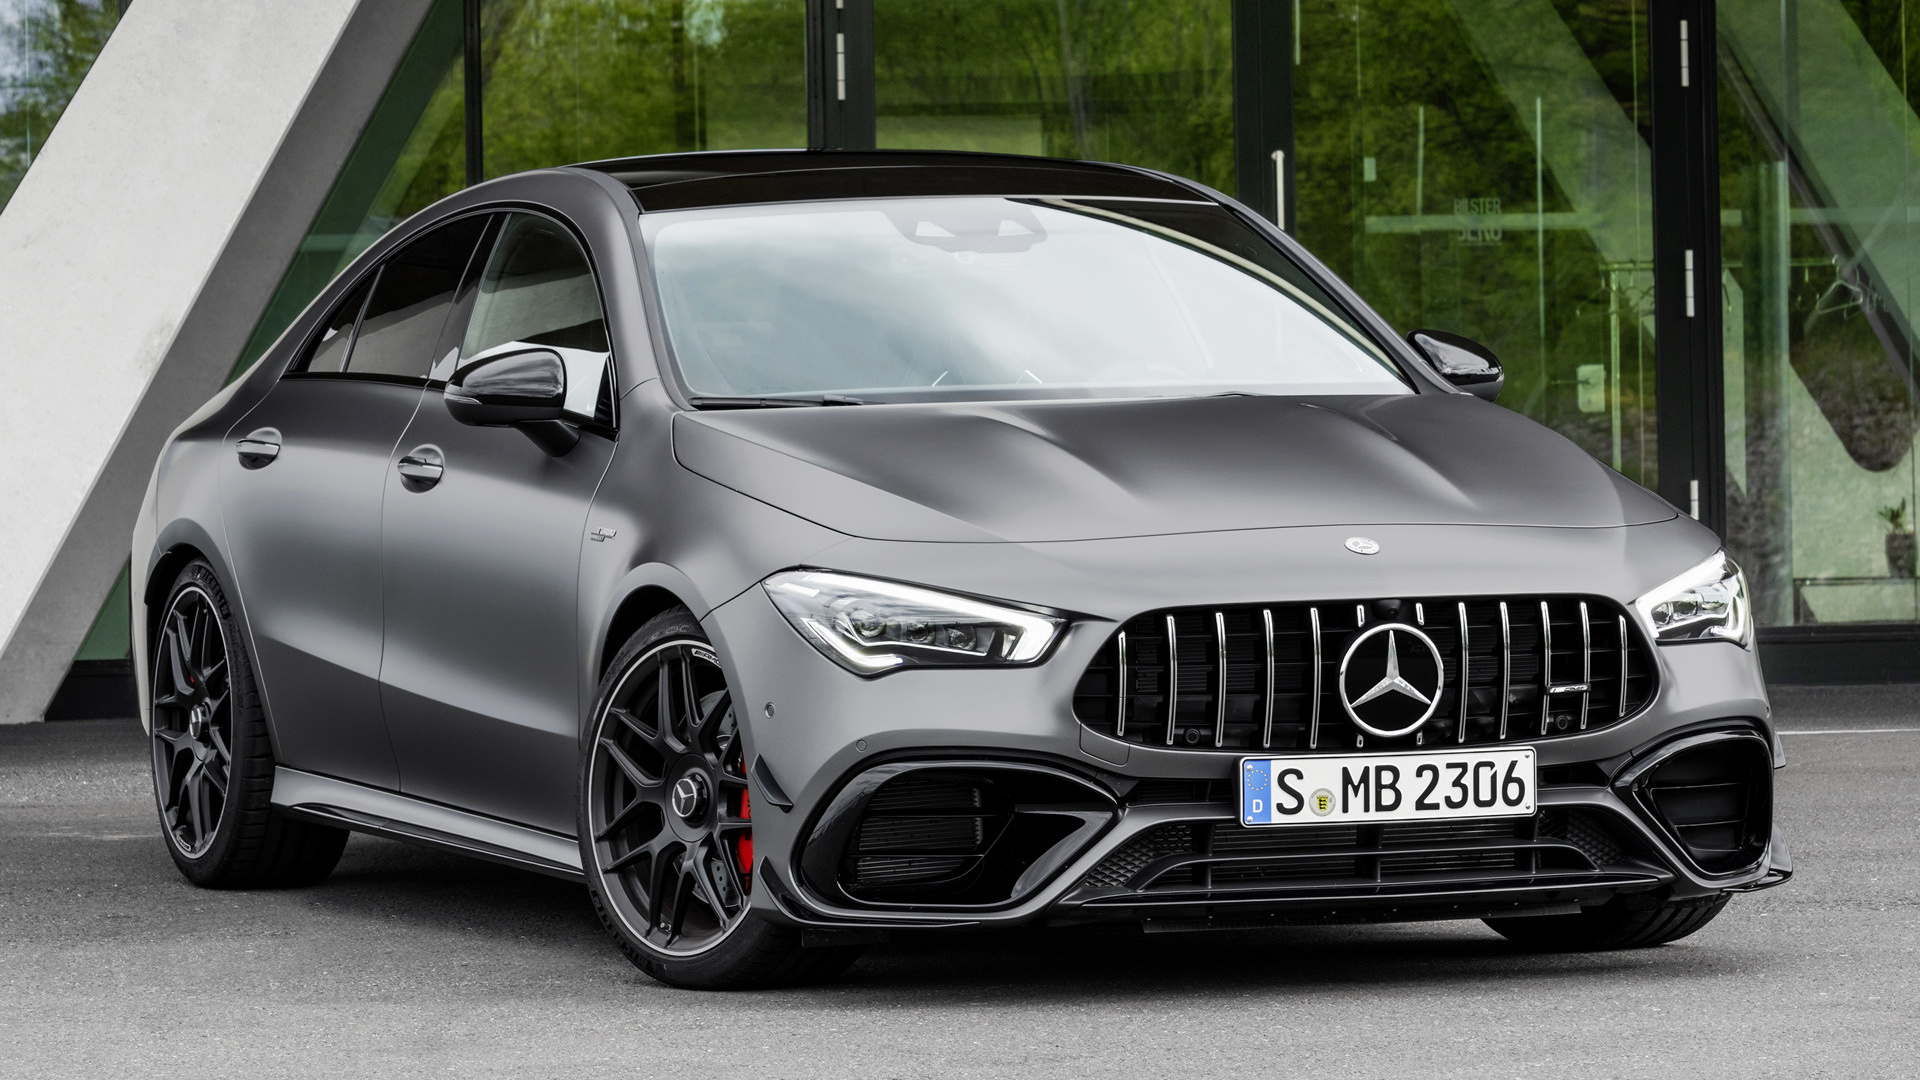 2019 Mercedes AMG CLA 45 S Aerodynamics Package